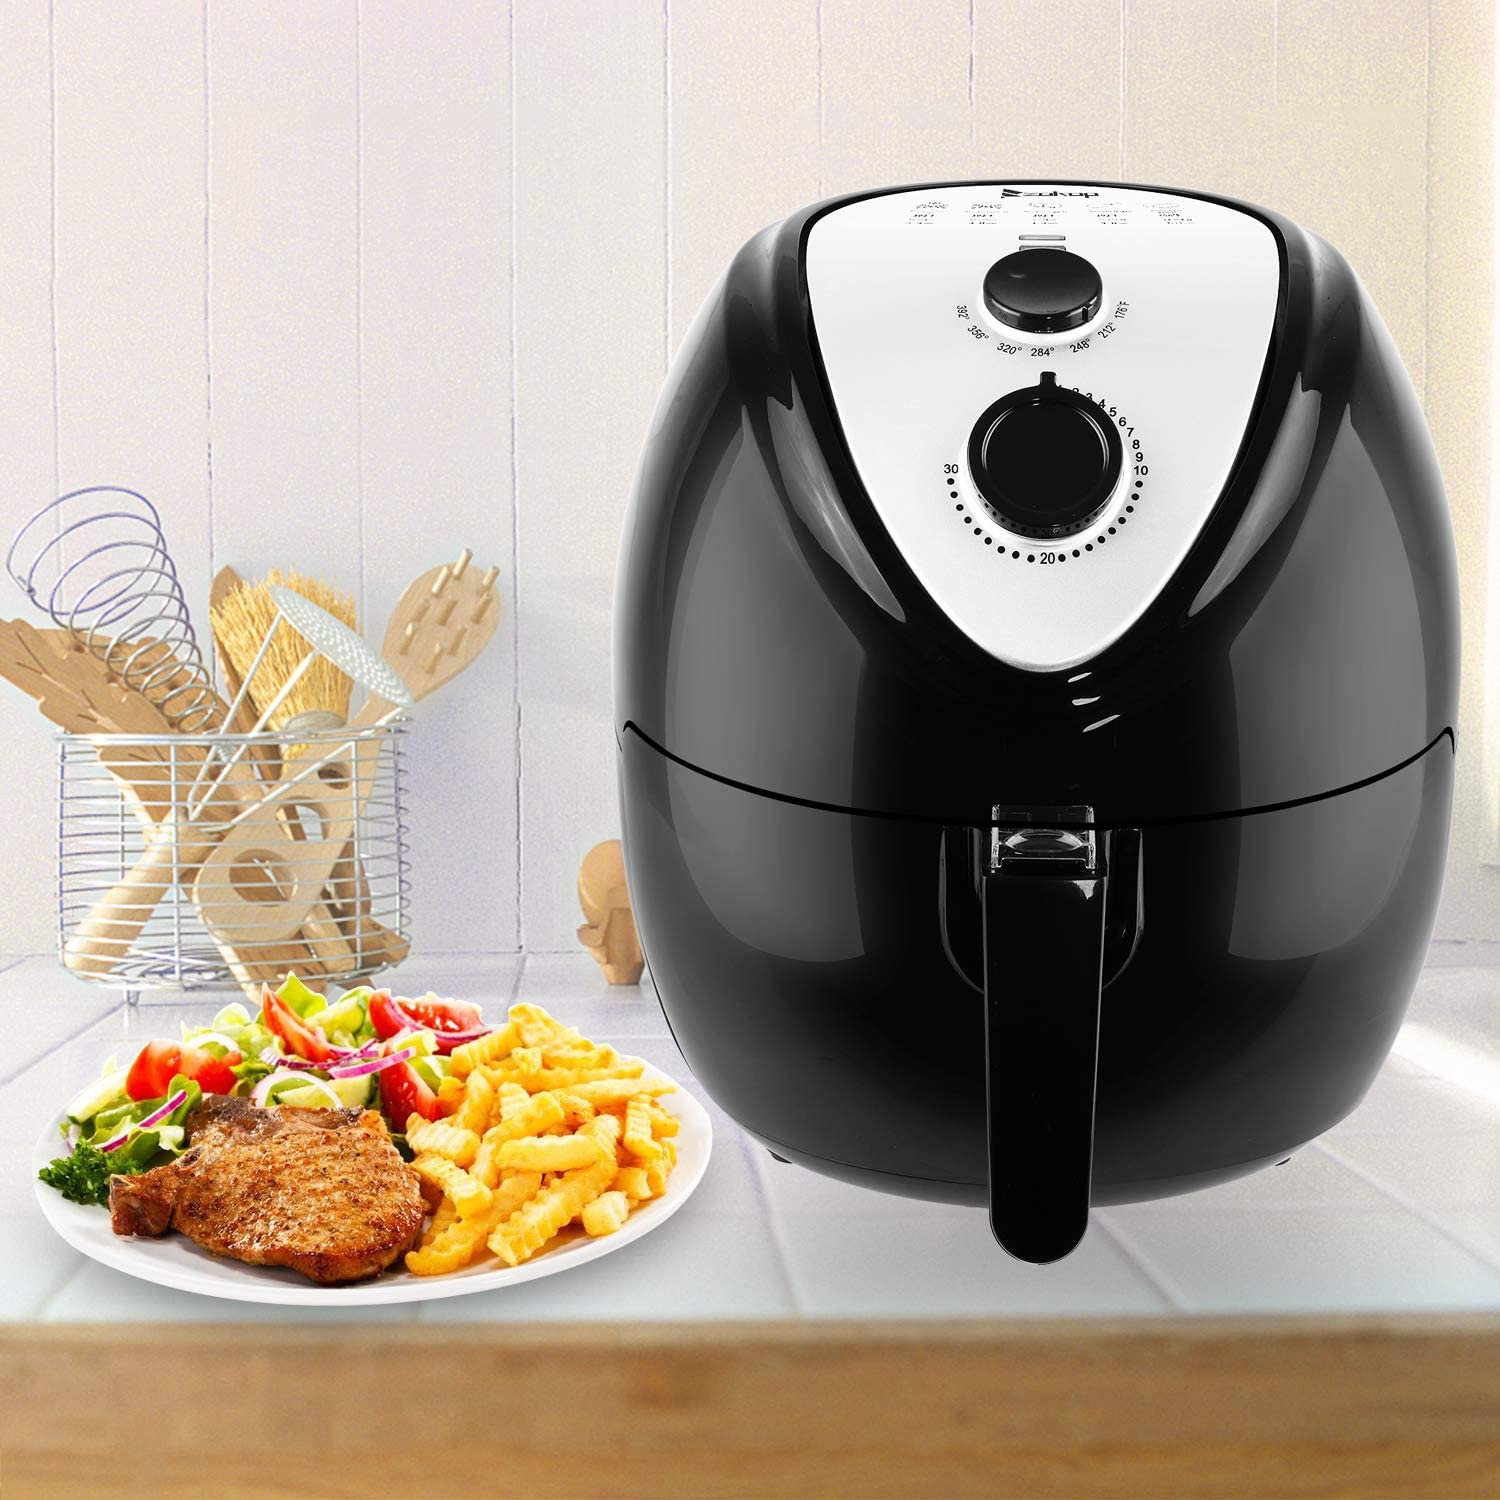 ZOKOP Electric Air Fryer, 120V 5.6Quart 1800W Air Oven Non-Stick, Fast Healthy Food Oil-Less Cooker Low Fat Easy Cleaning, Air Deep Fryer Cooker with Metal Holder Shelf Food Clip, US Plug Black